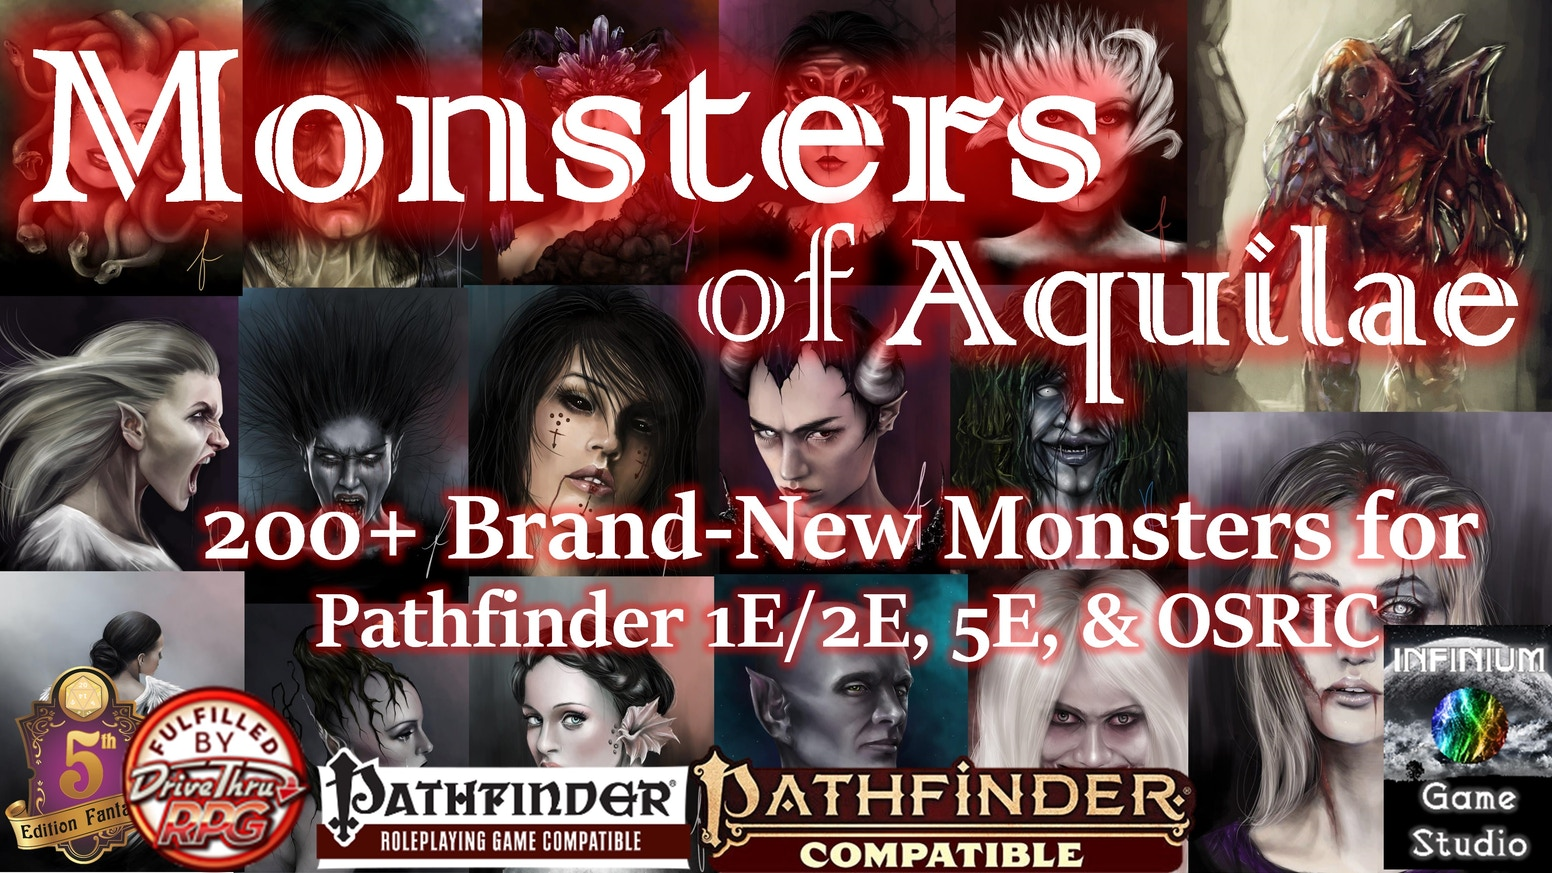 HUNDREDS of new monsters for Pathfinder, 5E, OSRIC, and Pathfinder Second Edition, usable in any campaign setting and any PC level.